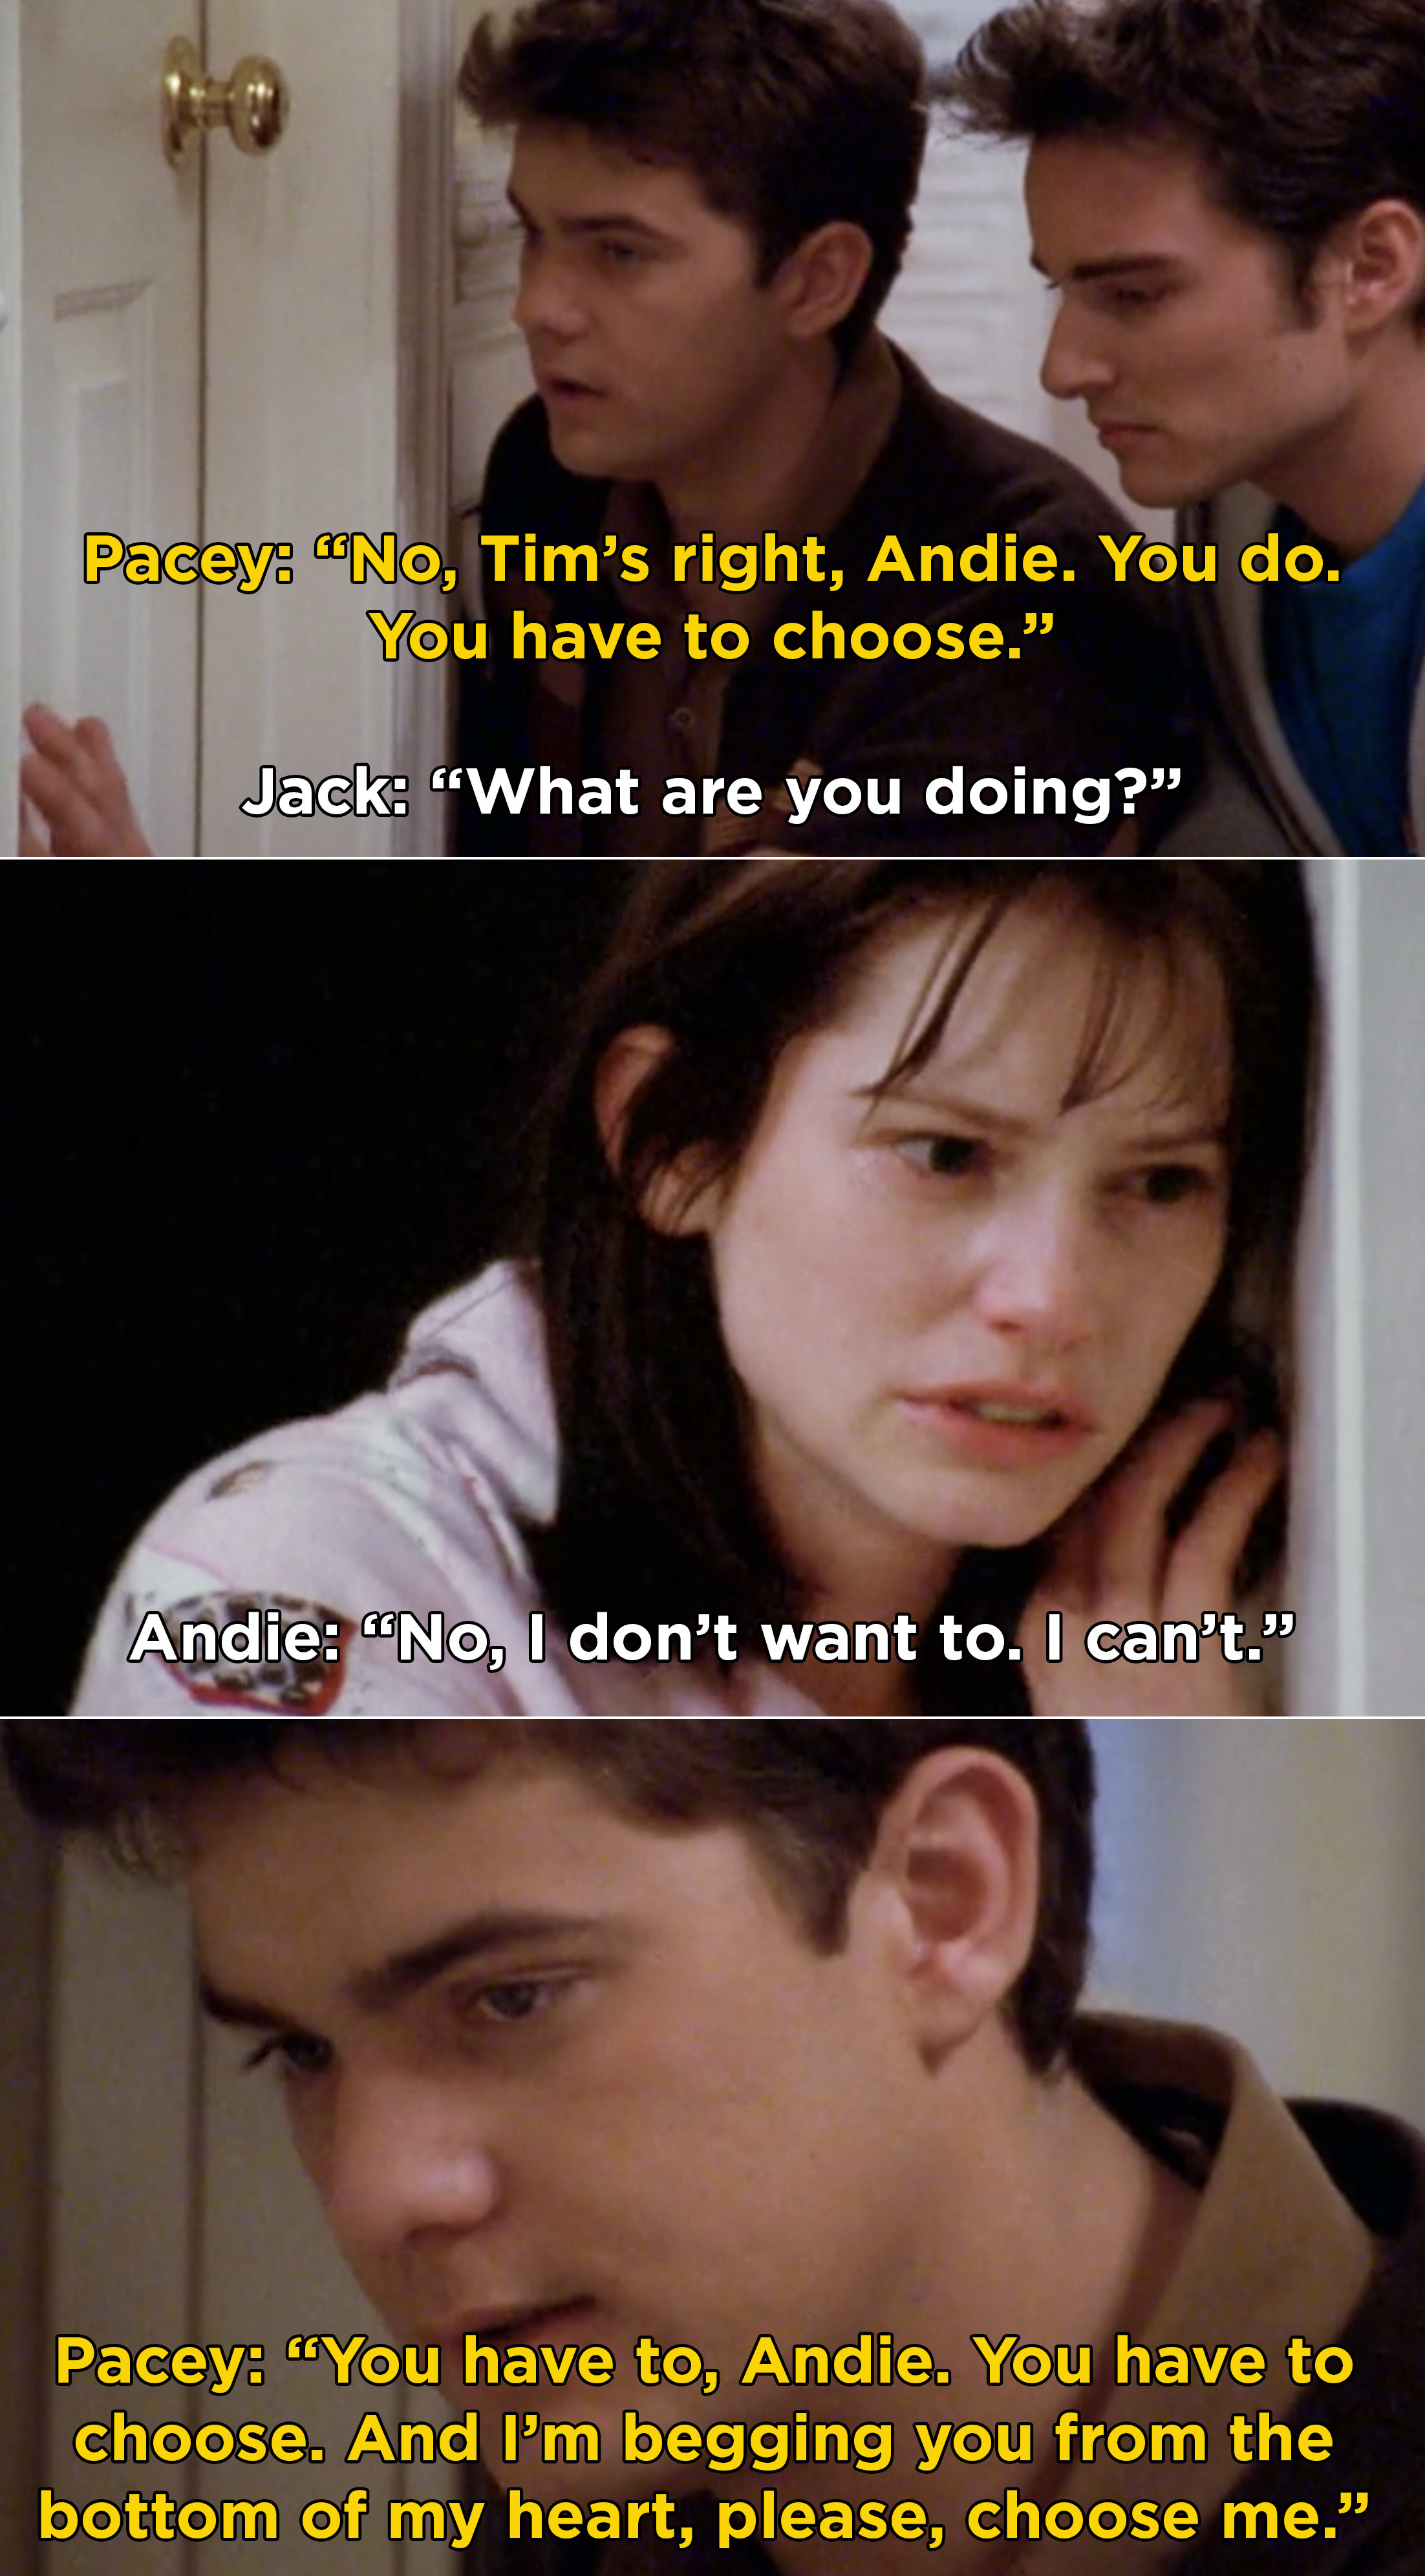 Pacey and Jack begging with Andie to open up the bathroom door and come out